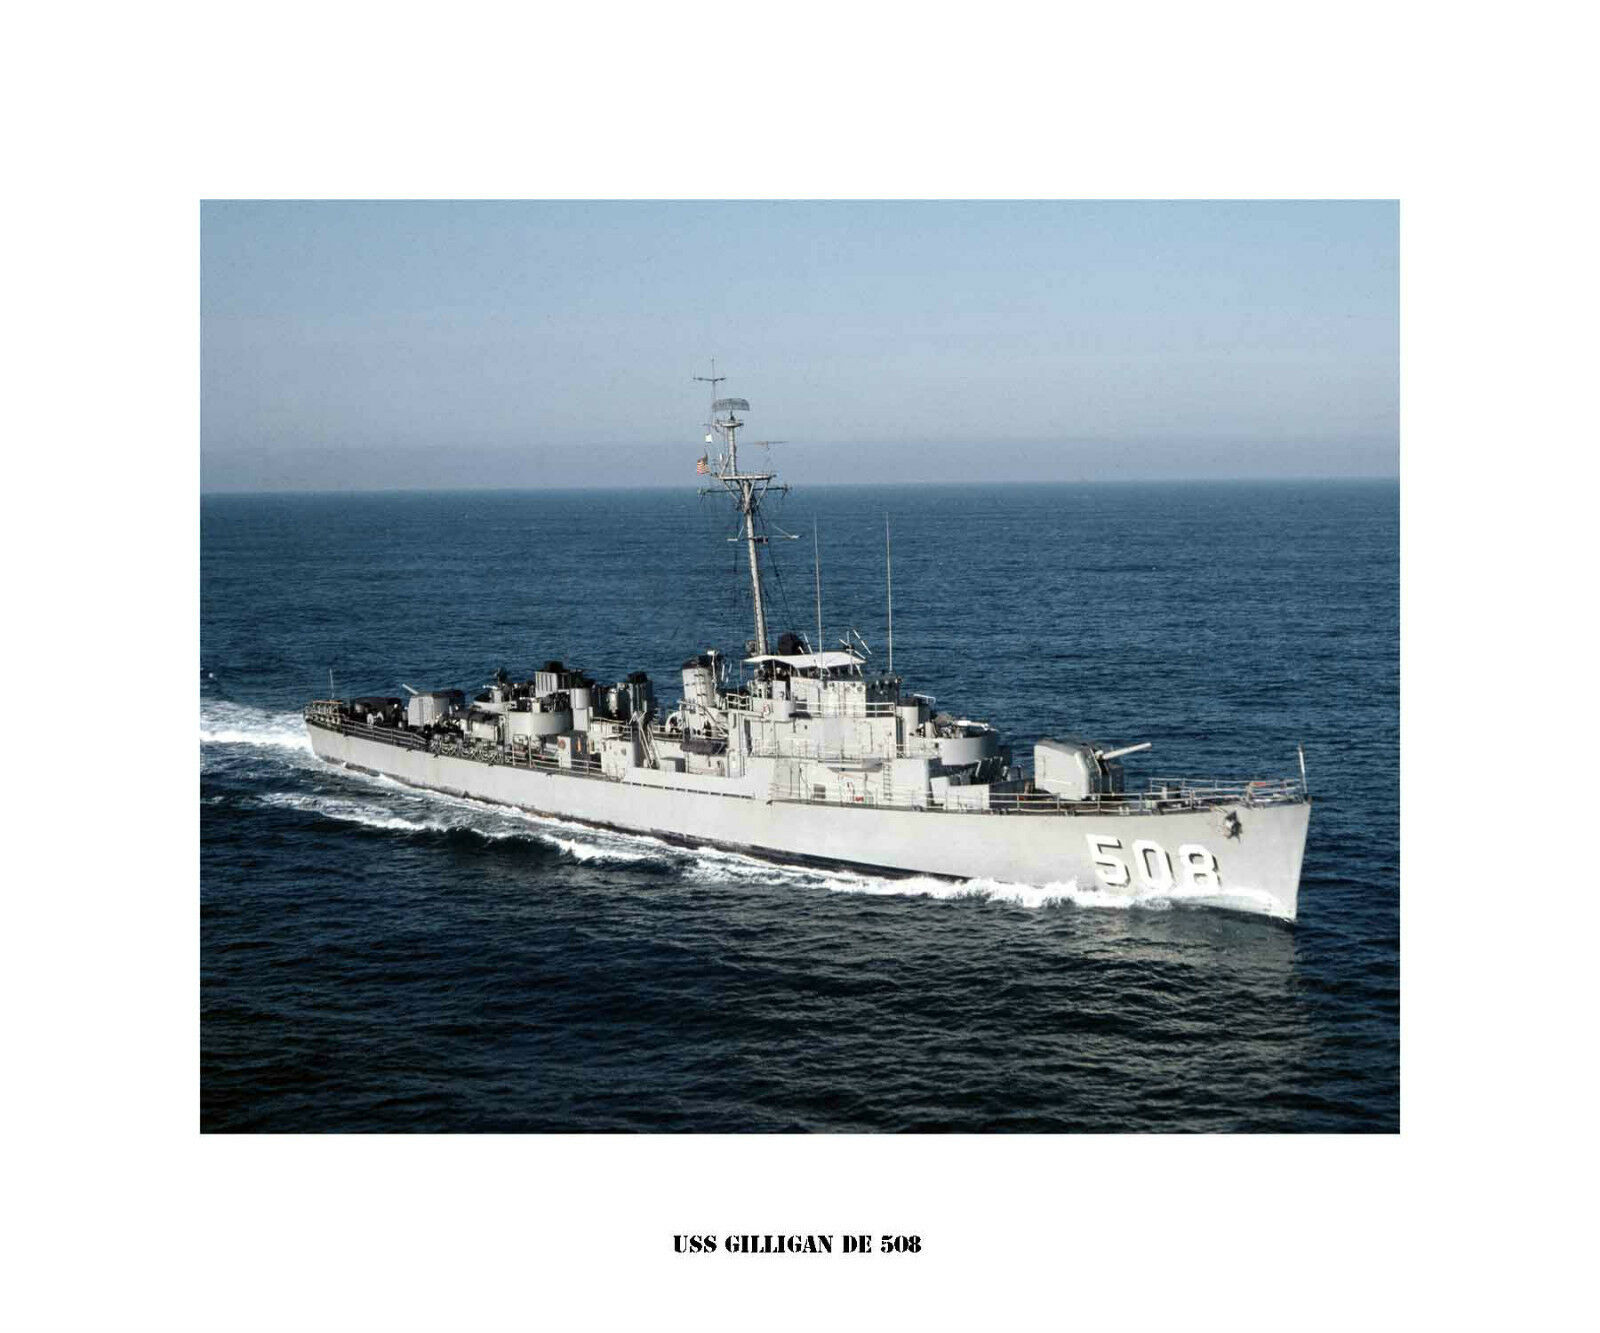 USS GILLIGAN DE 508  Destroyer Escort, US Ship, USN Navy Photo Drucken